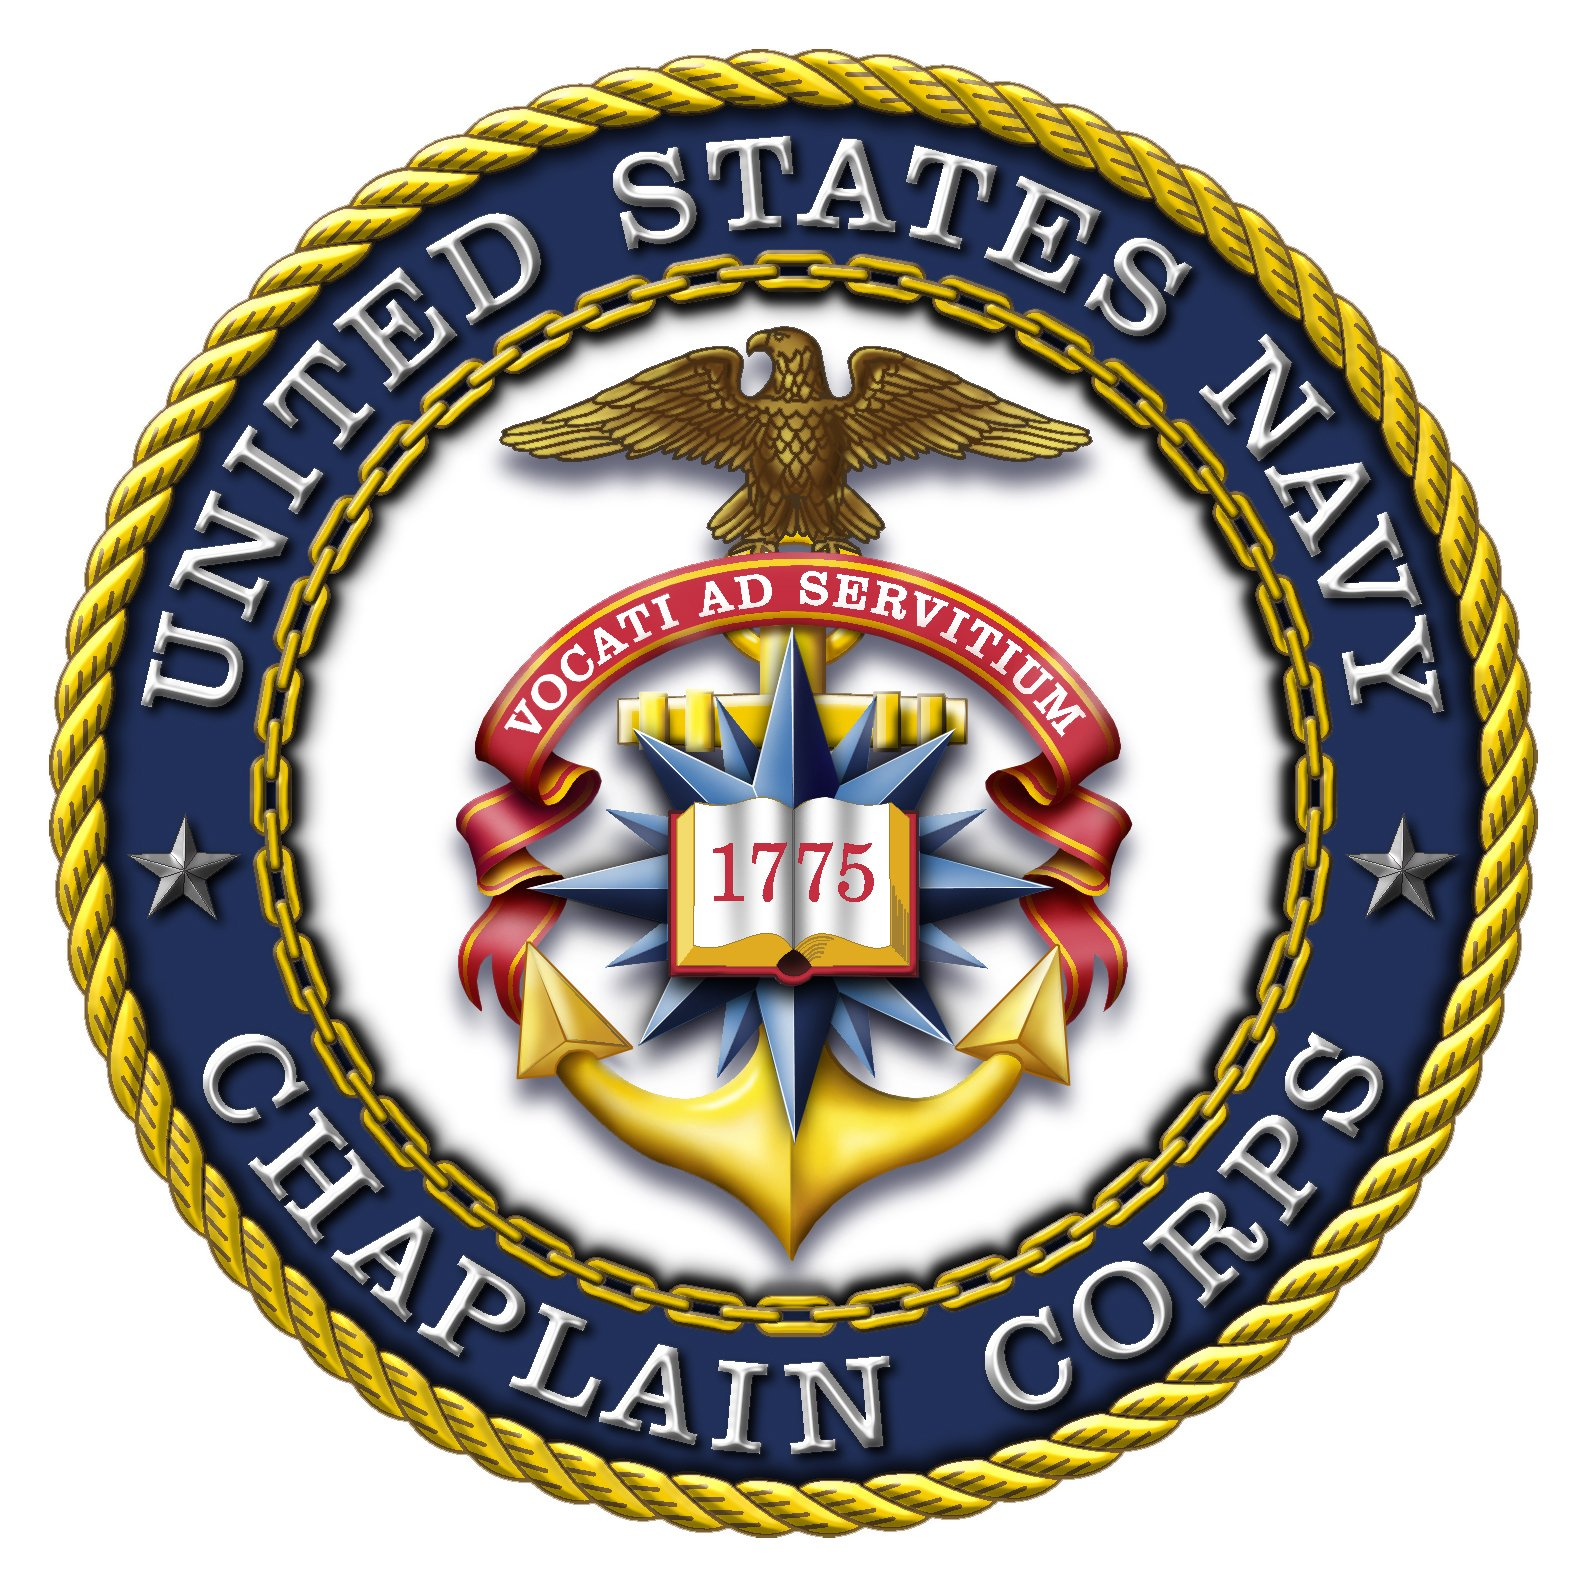 US_Navy_Chaplain_Corps_Seal_2001.jpg